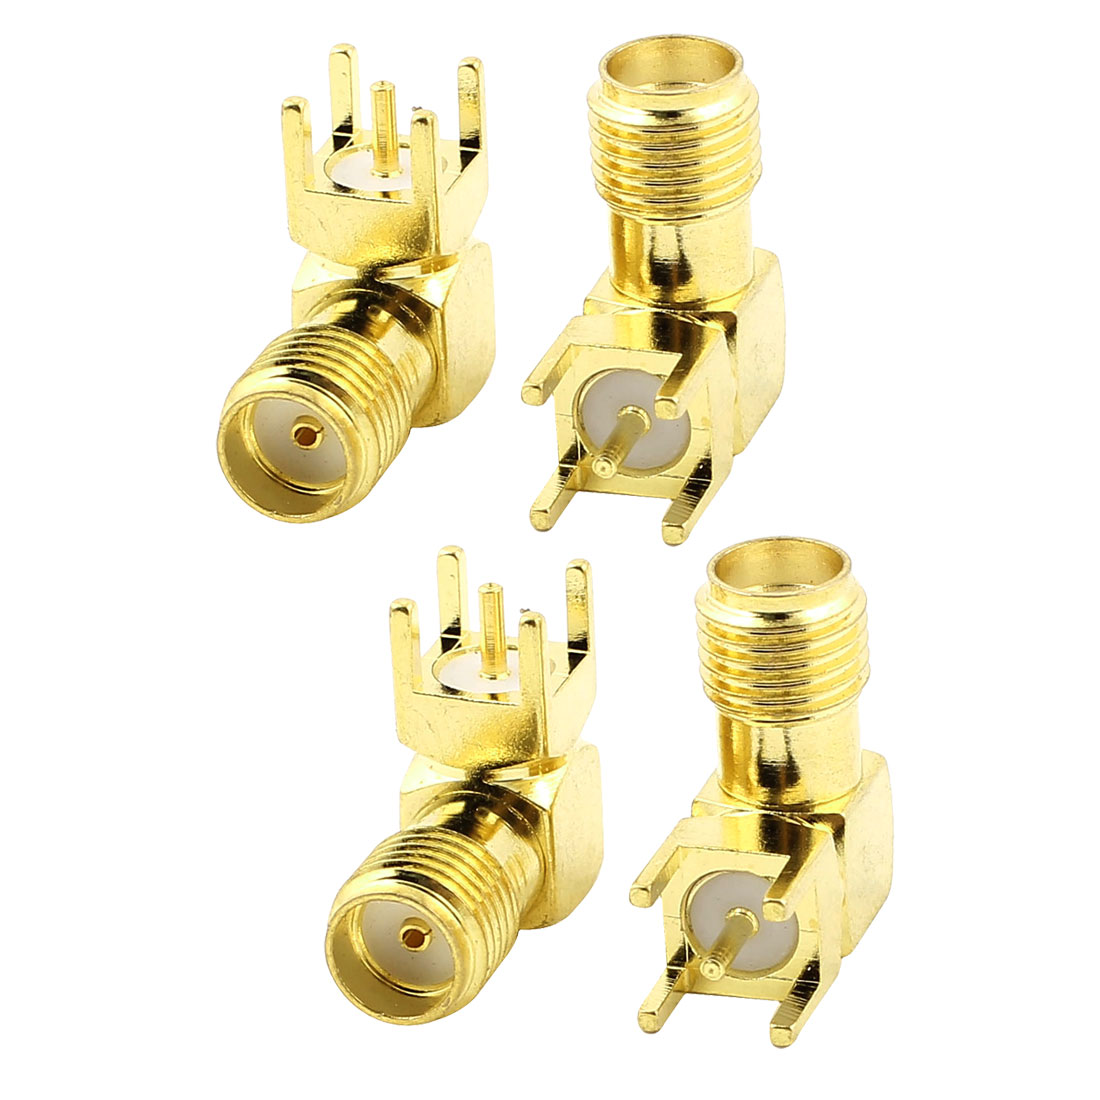 SMA Female Jack Right Angle Solder PCB Mount RF Connector Adapter Gold Tone 4pcs